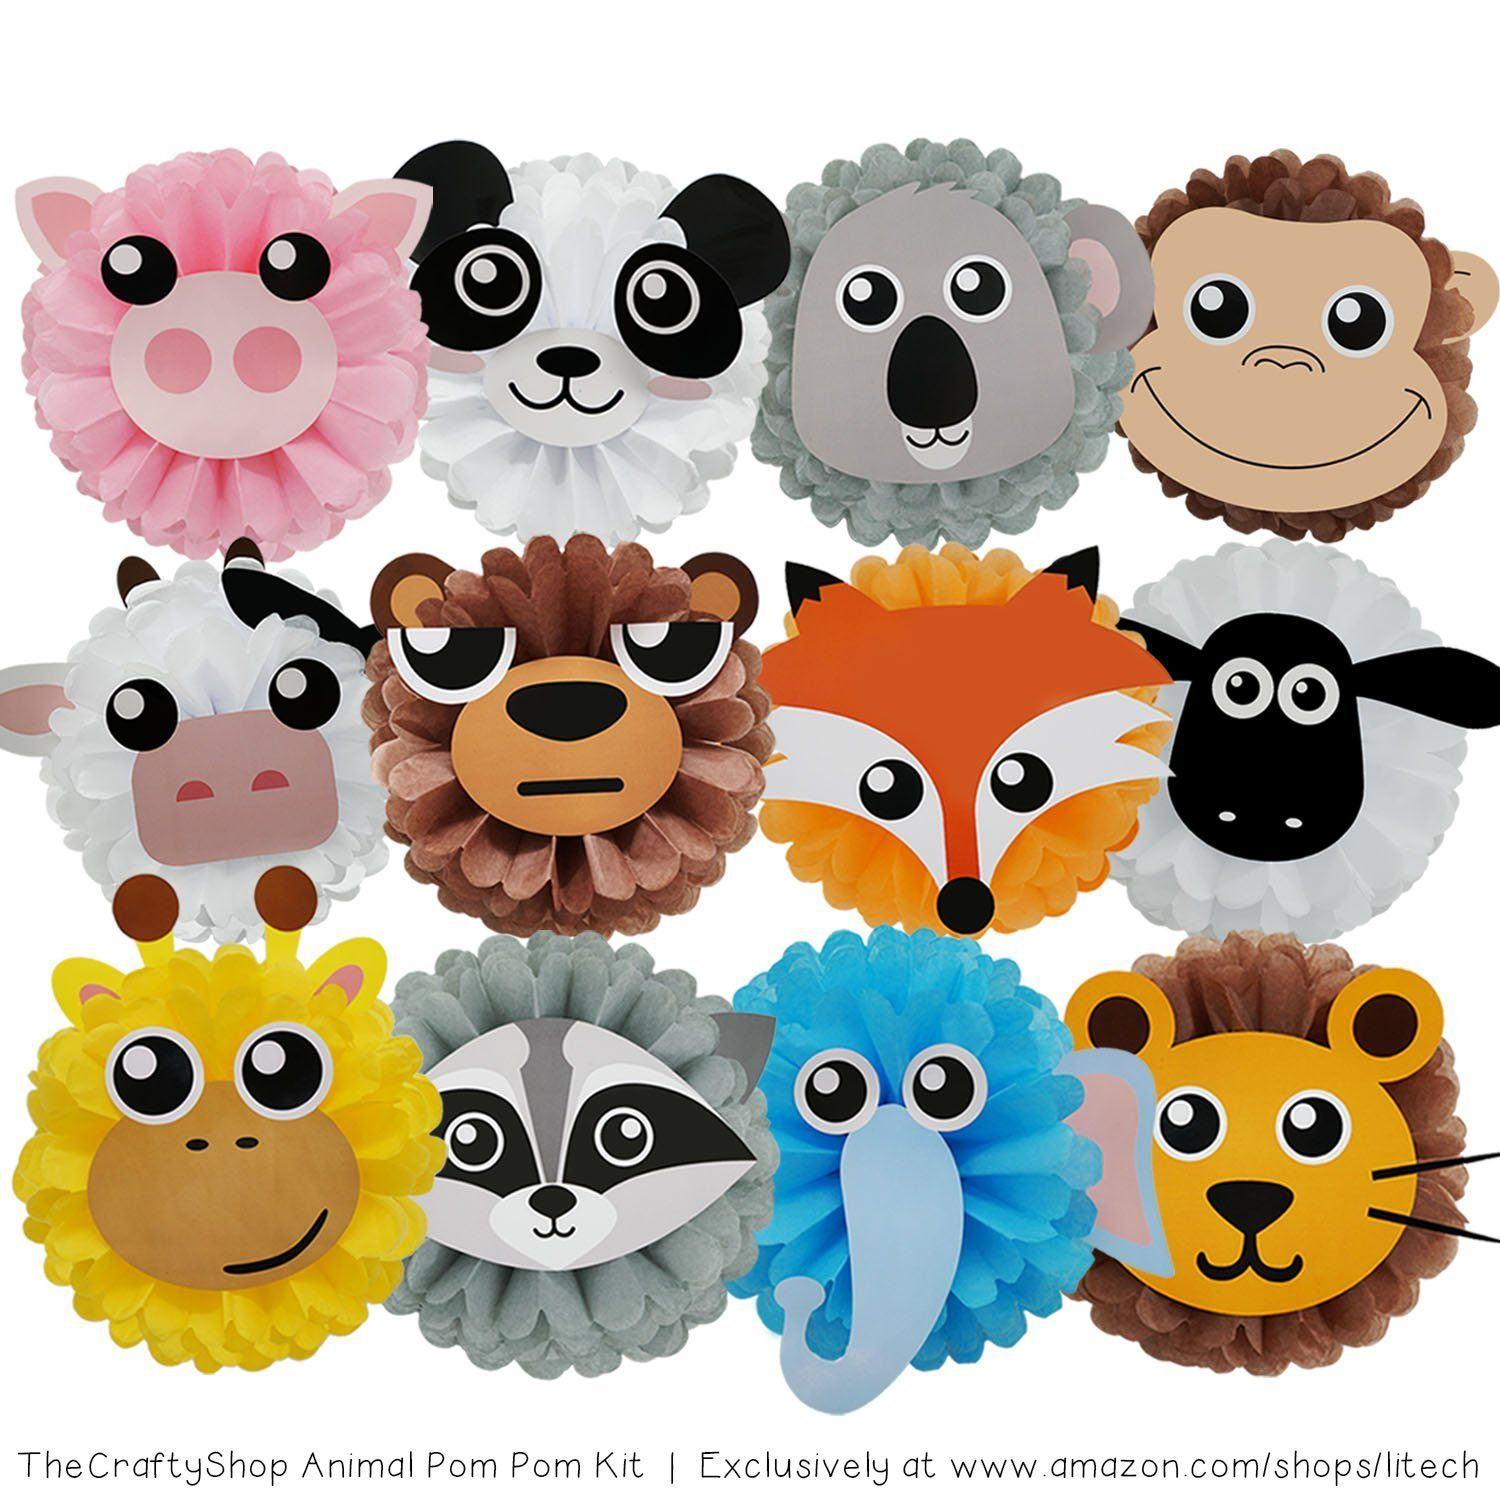 Thecraftyshop 12 tissue paper flower animal pom pom kit perfect amazon thecraftyshop 12 tissue paper flower animal pom pom kit perfect diy decoration project kit for birthday baby shower indoor outdoor animal mightylinksfo Image collections